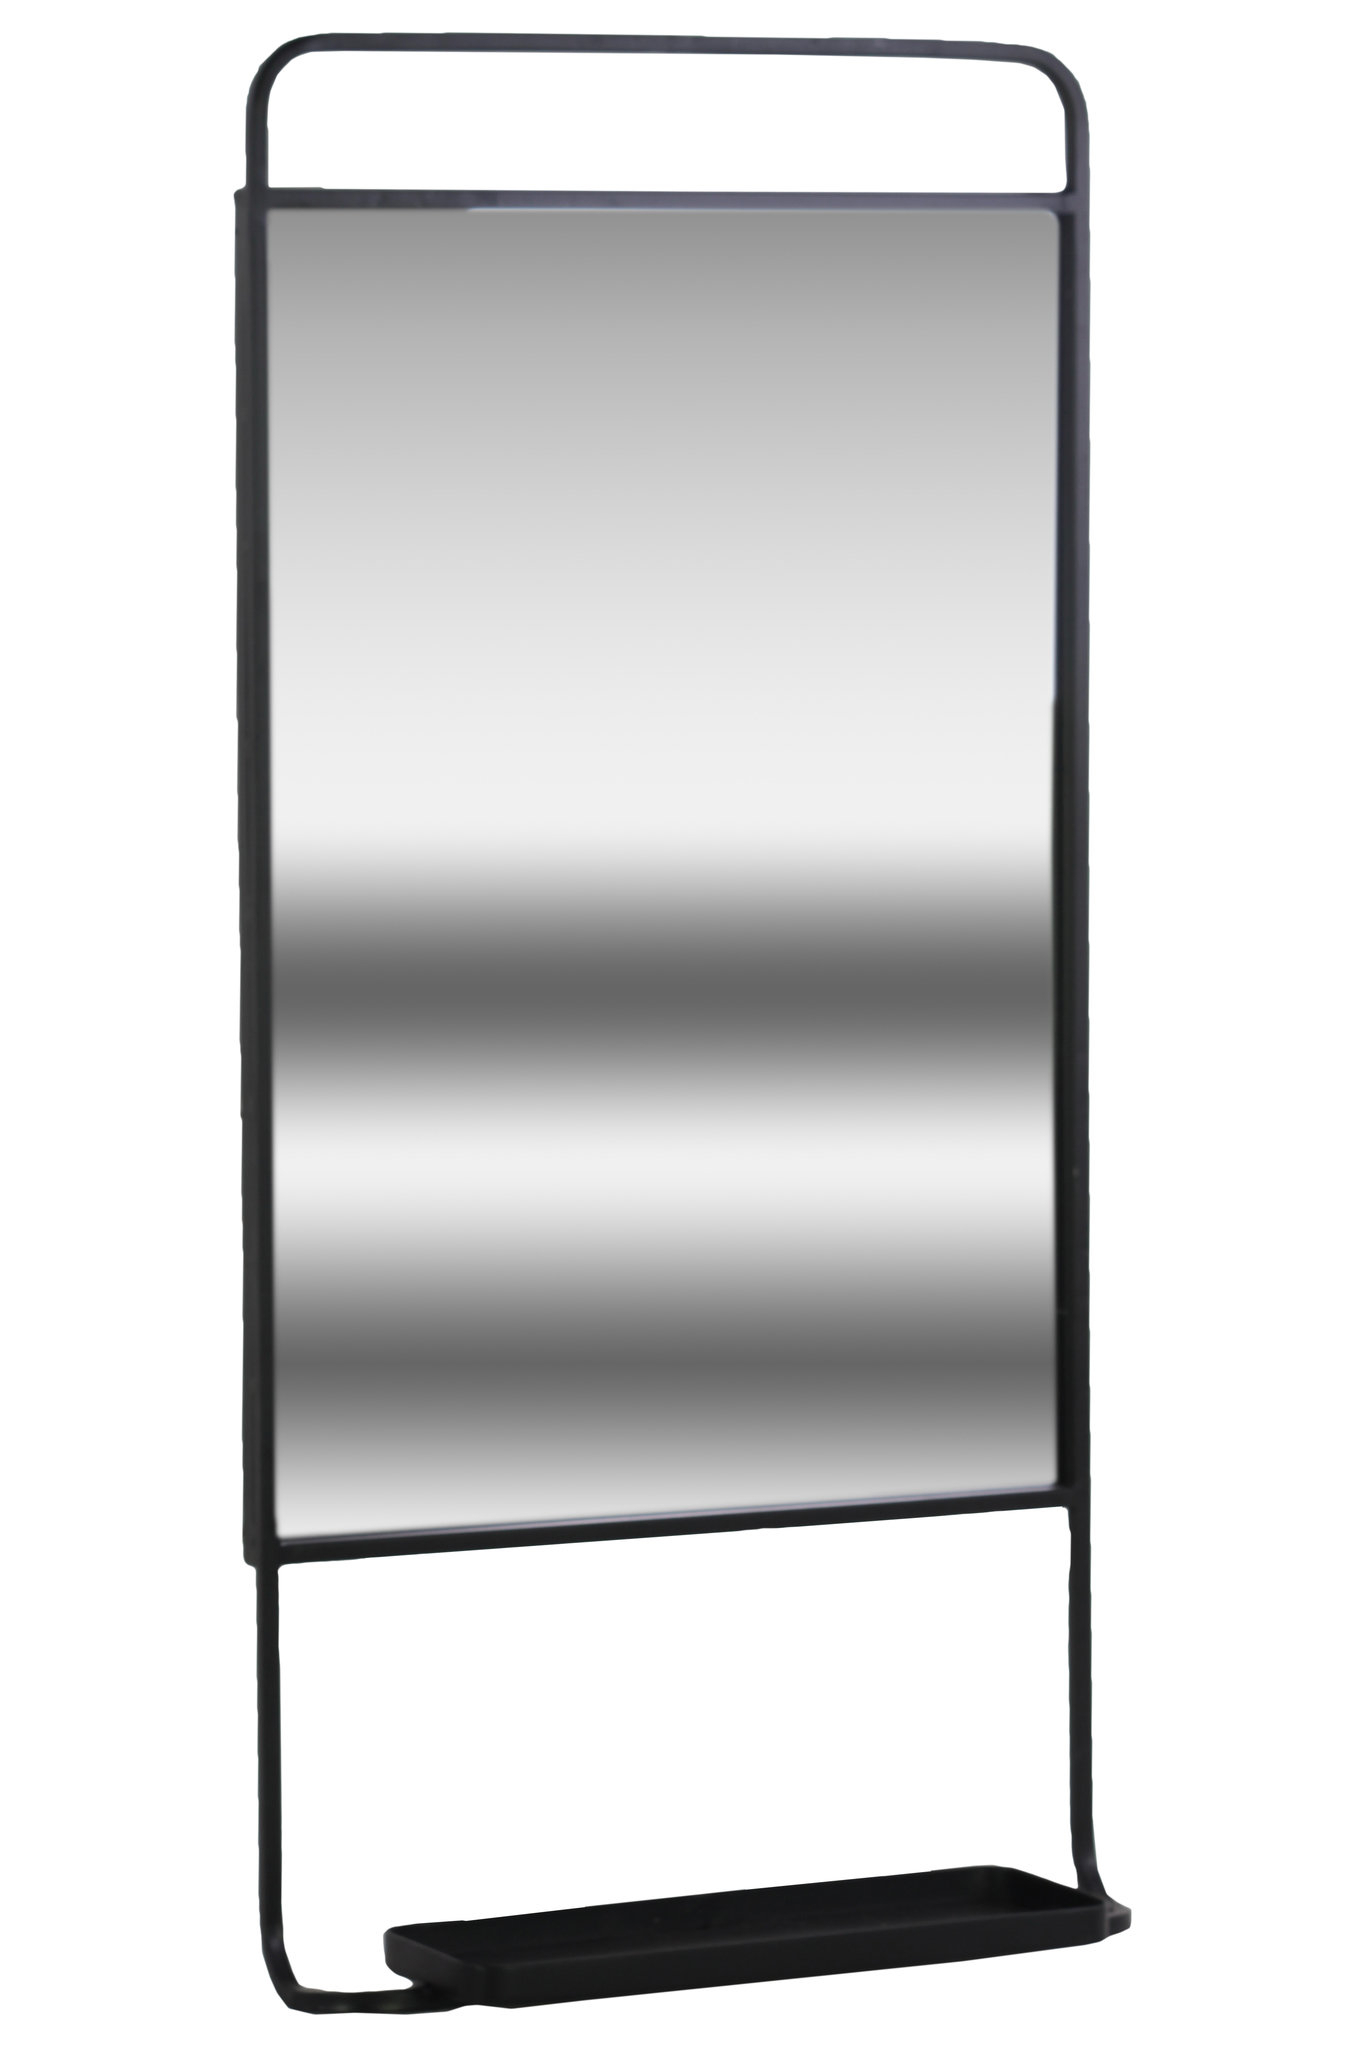 Greco Metal Rectangular Accent Mirror Intended For Kayden Accent Mirrors (View 10 of 30)